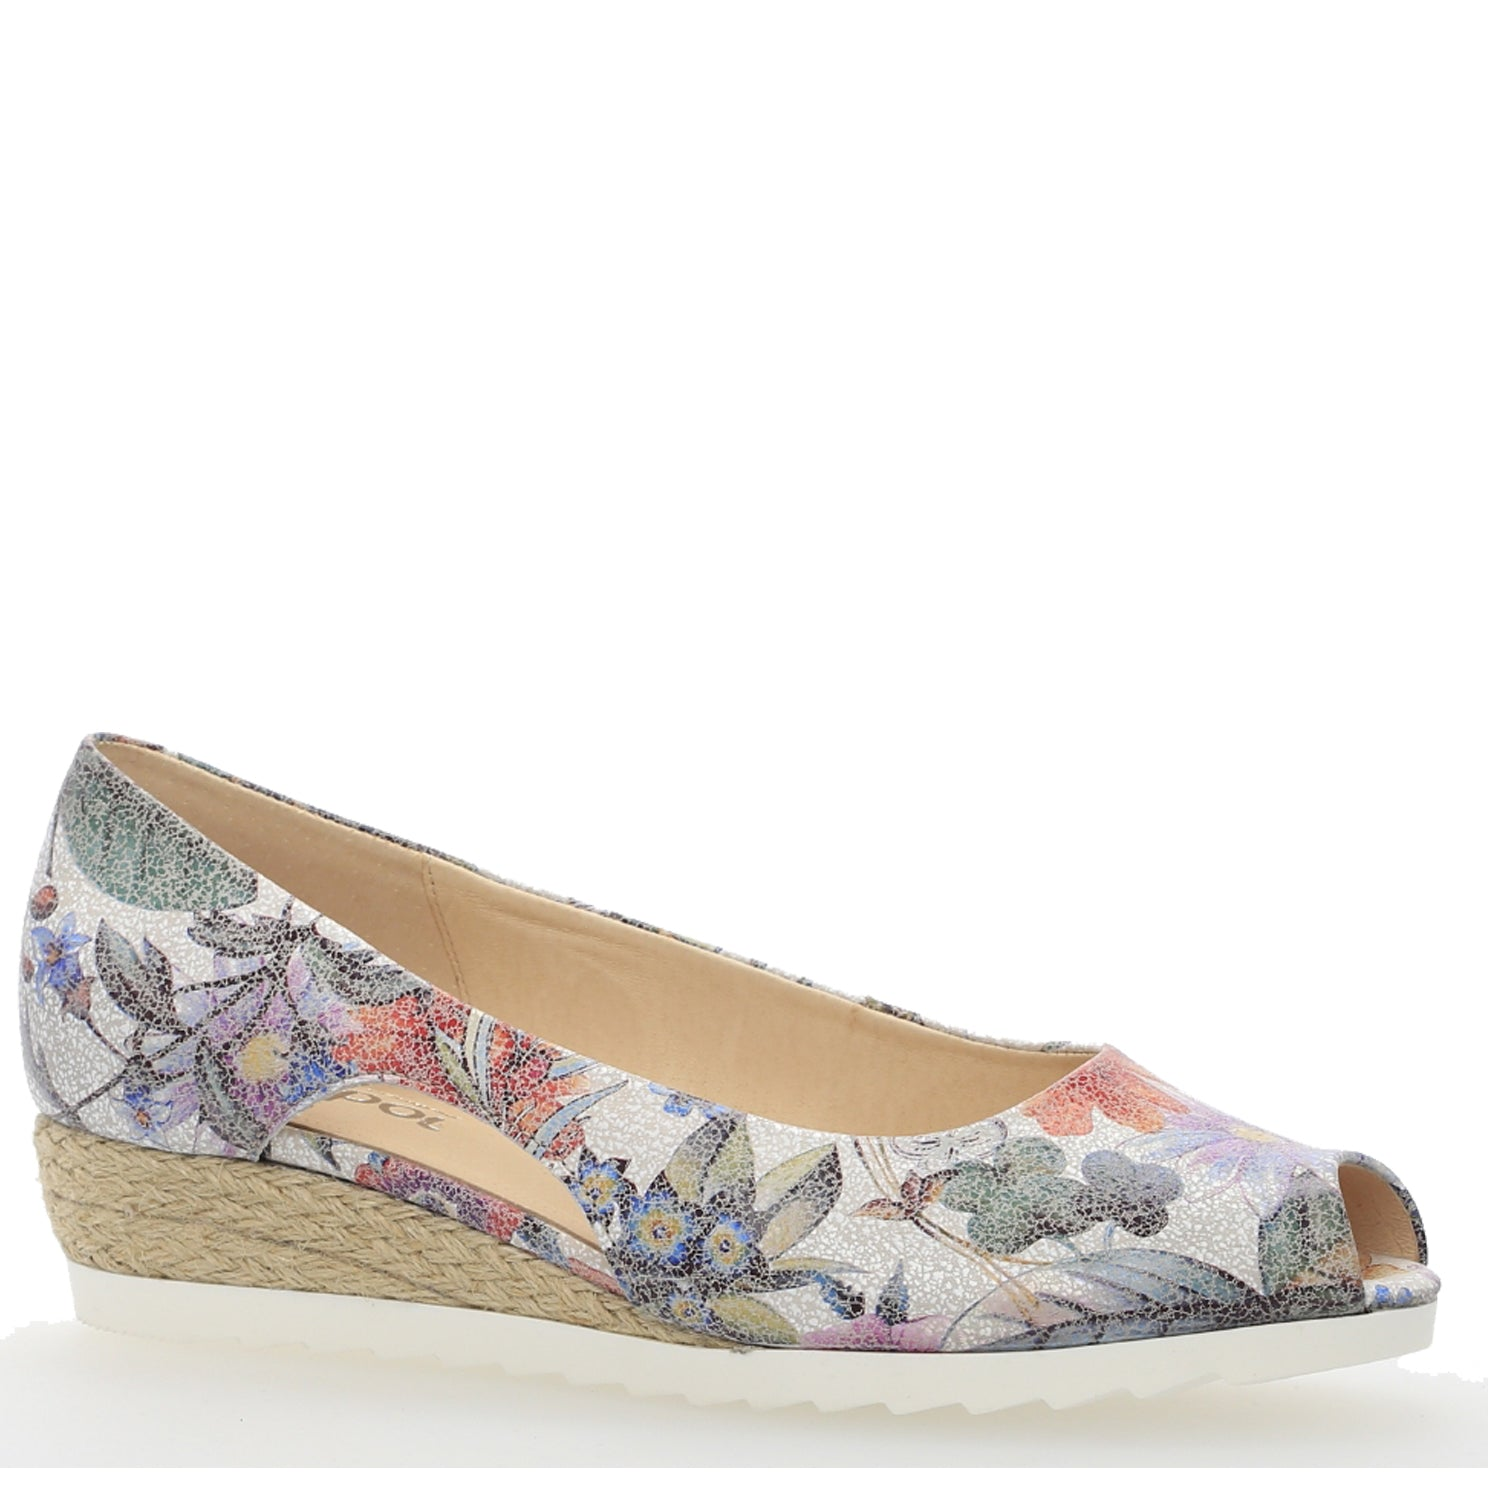 G82.630 - MULTICOLOR  FLOWER PRINT